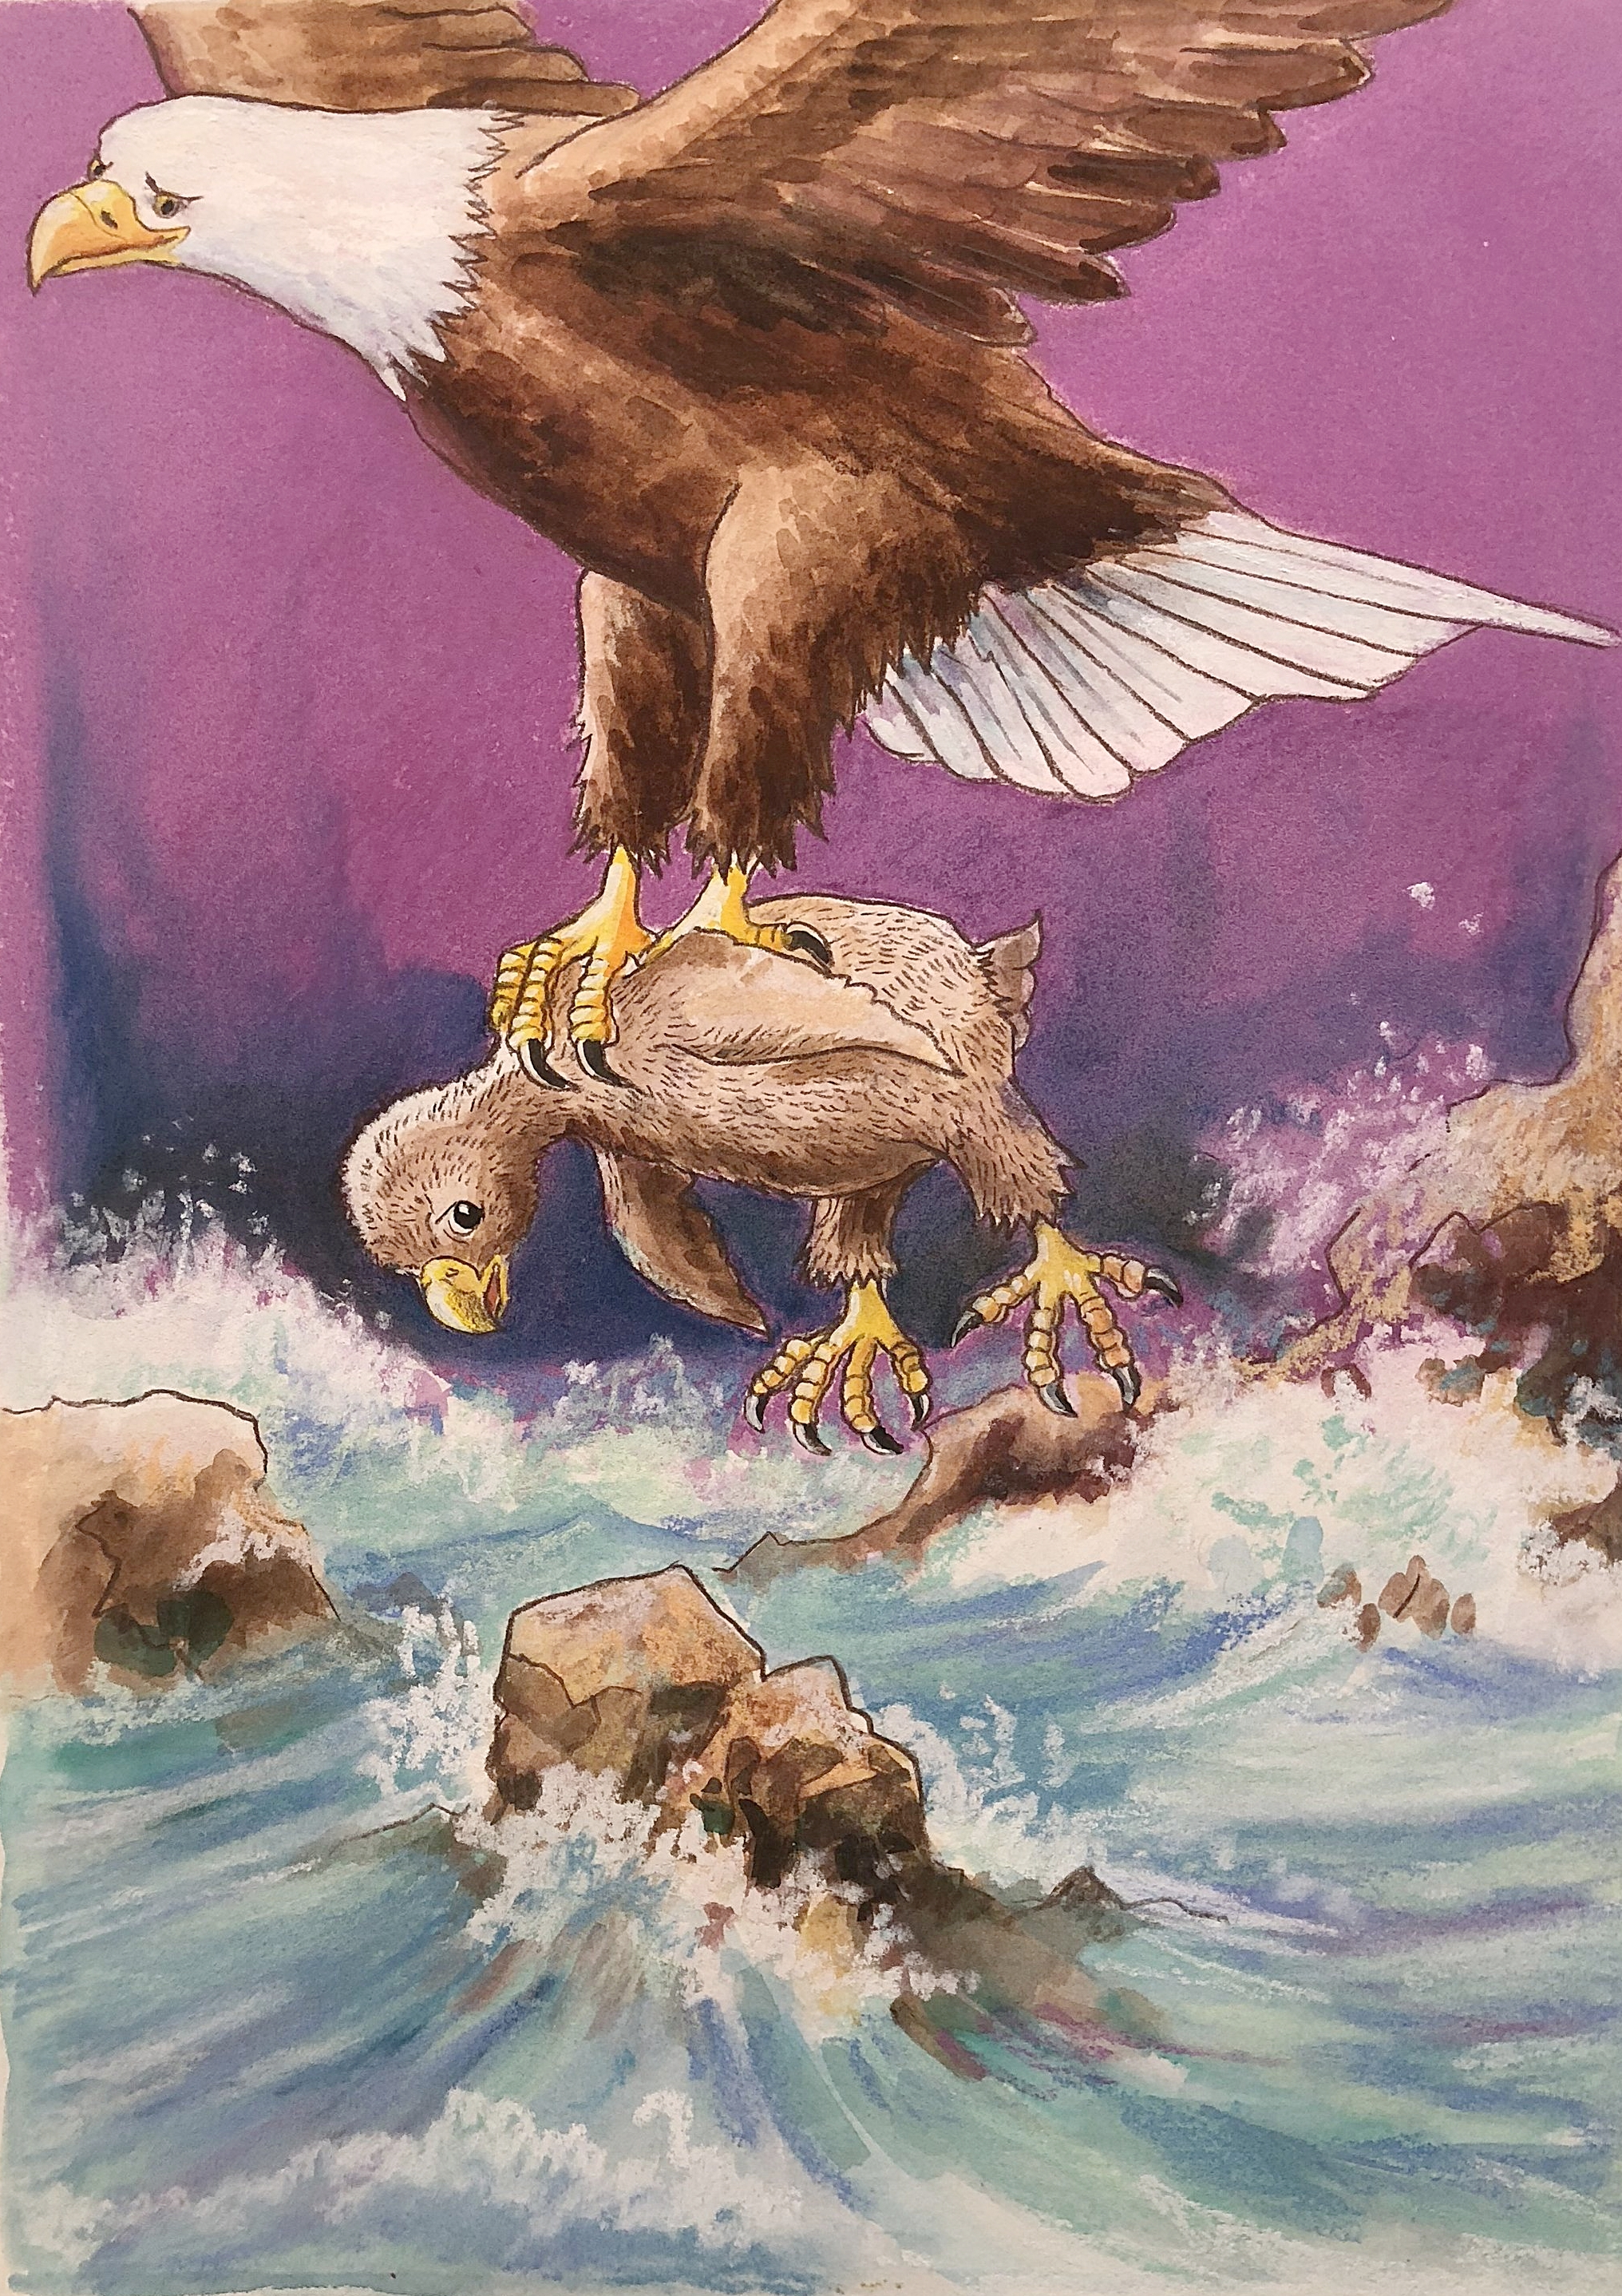 The Eaglet Story by Jim Elliff